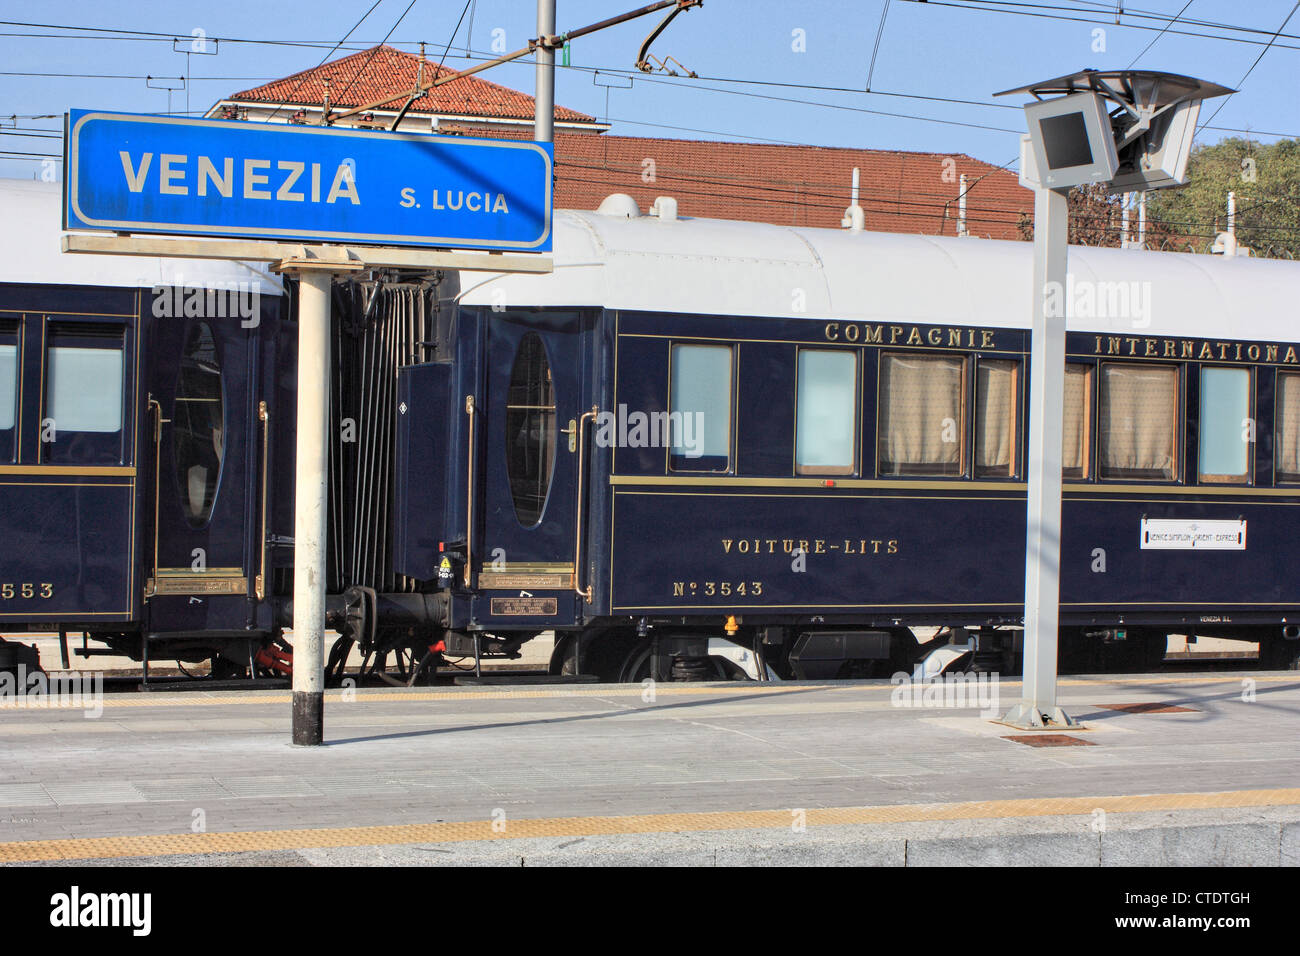 The Venice Simplon-Orient-Express Luxury Train at Venice train station, Italy. - Stock Image